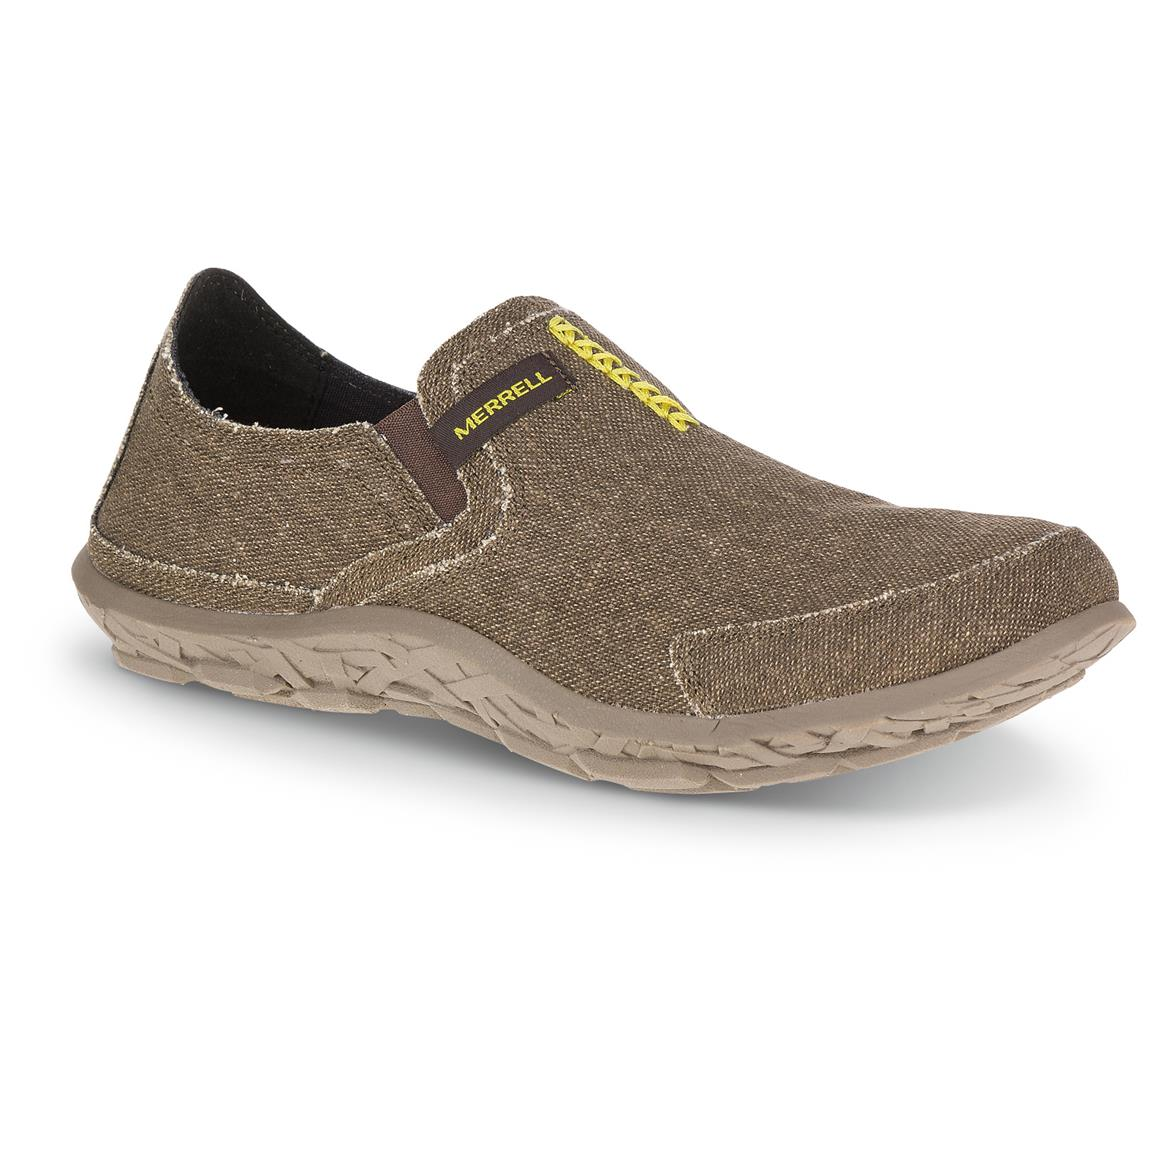 Merrell Men's Slipper Shoes, Dark Brown / Lime